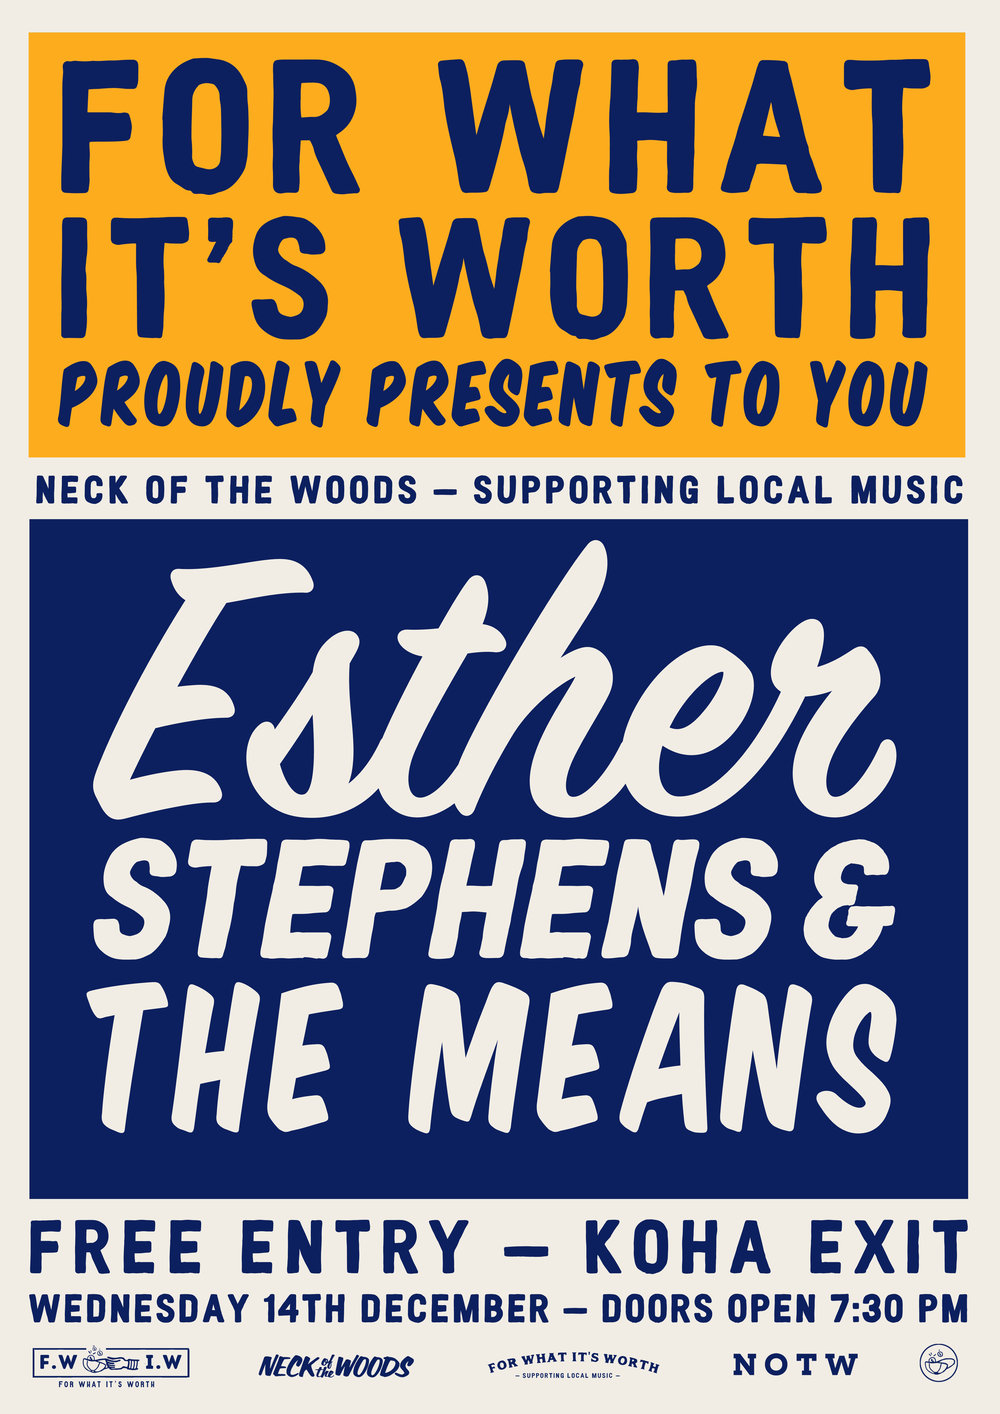 Our previous FWIW event: Esther Stephen & The Means